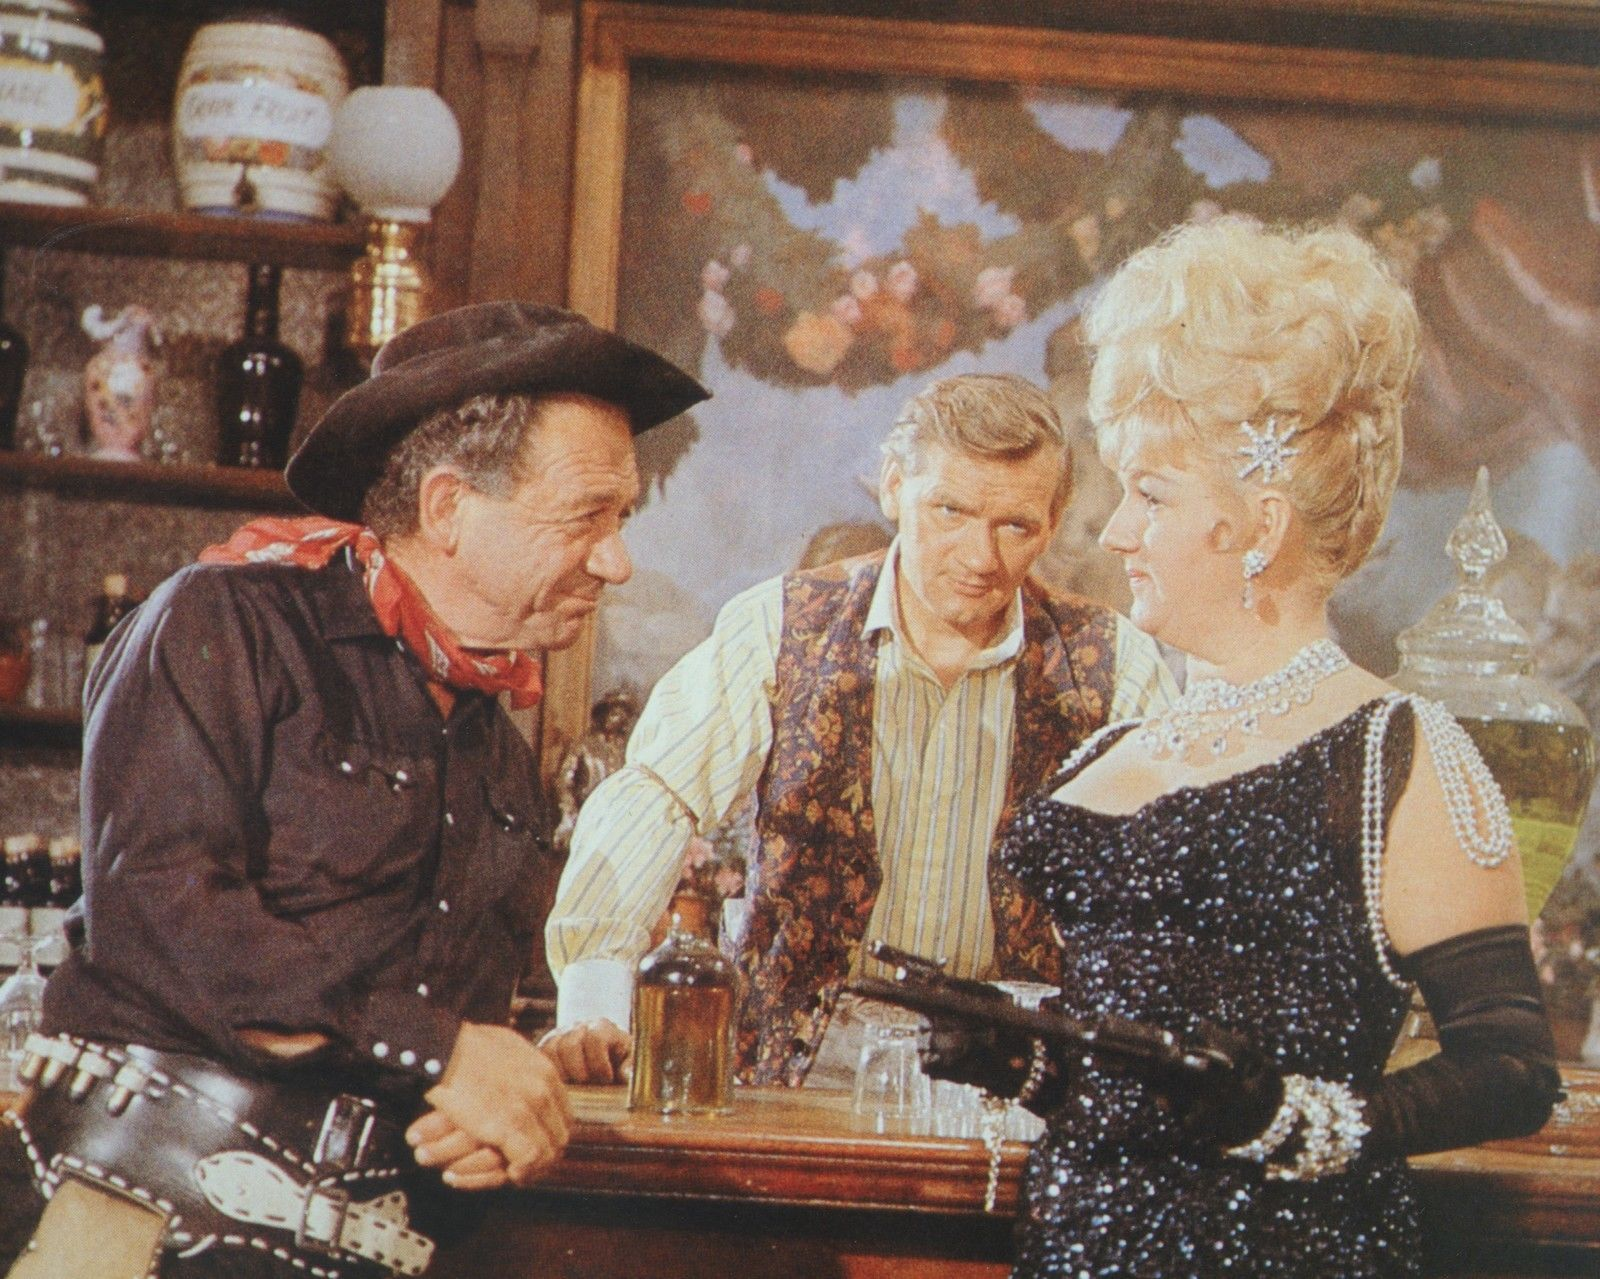 Joan Sims Nude sidney james, percy herbert and joan sims. carry on cowboy